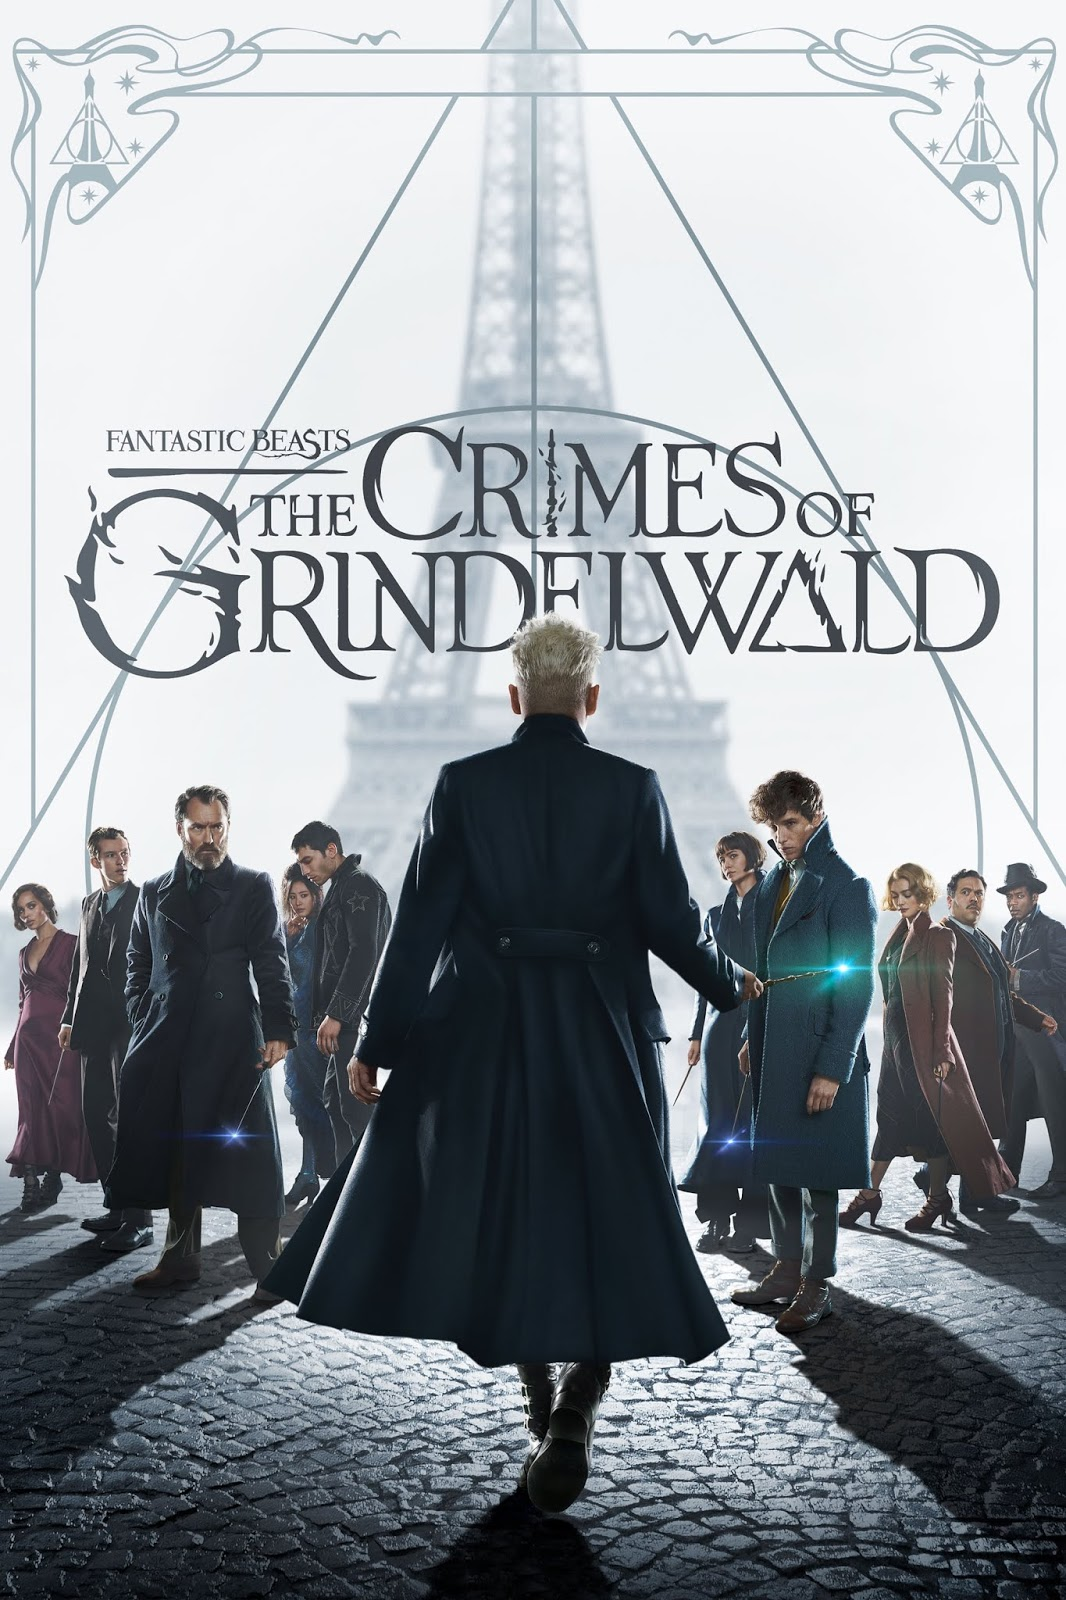 FANTASTIC BEASTS THE CRIMES OF GRINDELWALD TAMIL DUBBED HD